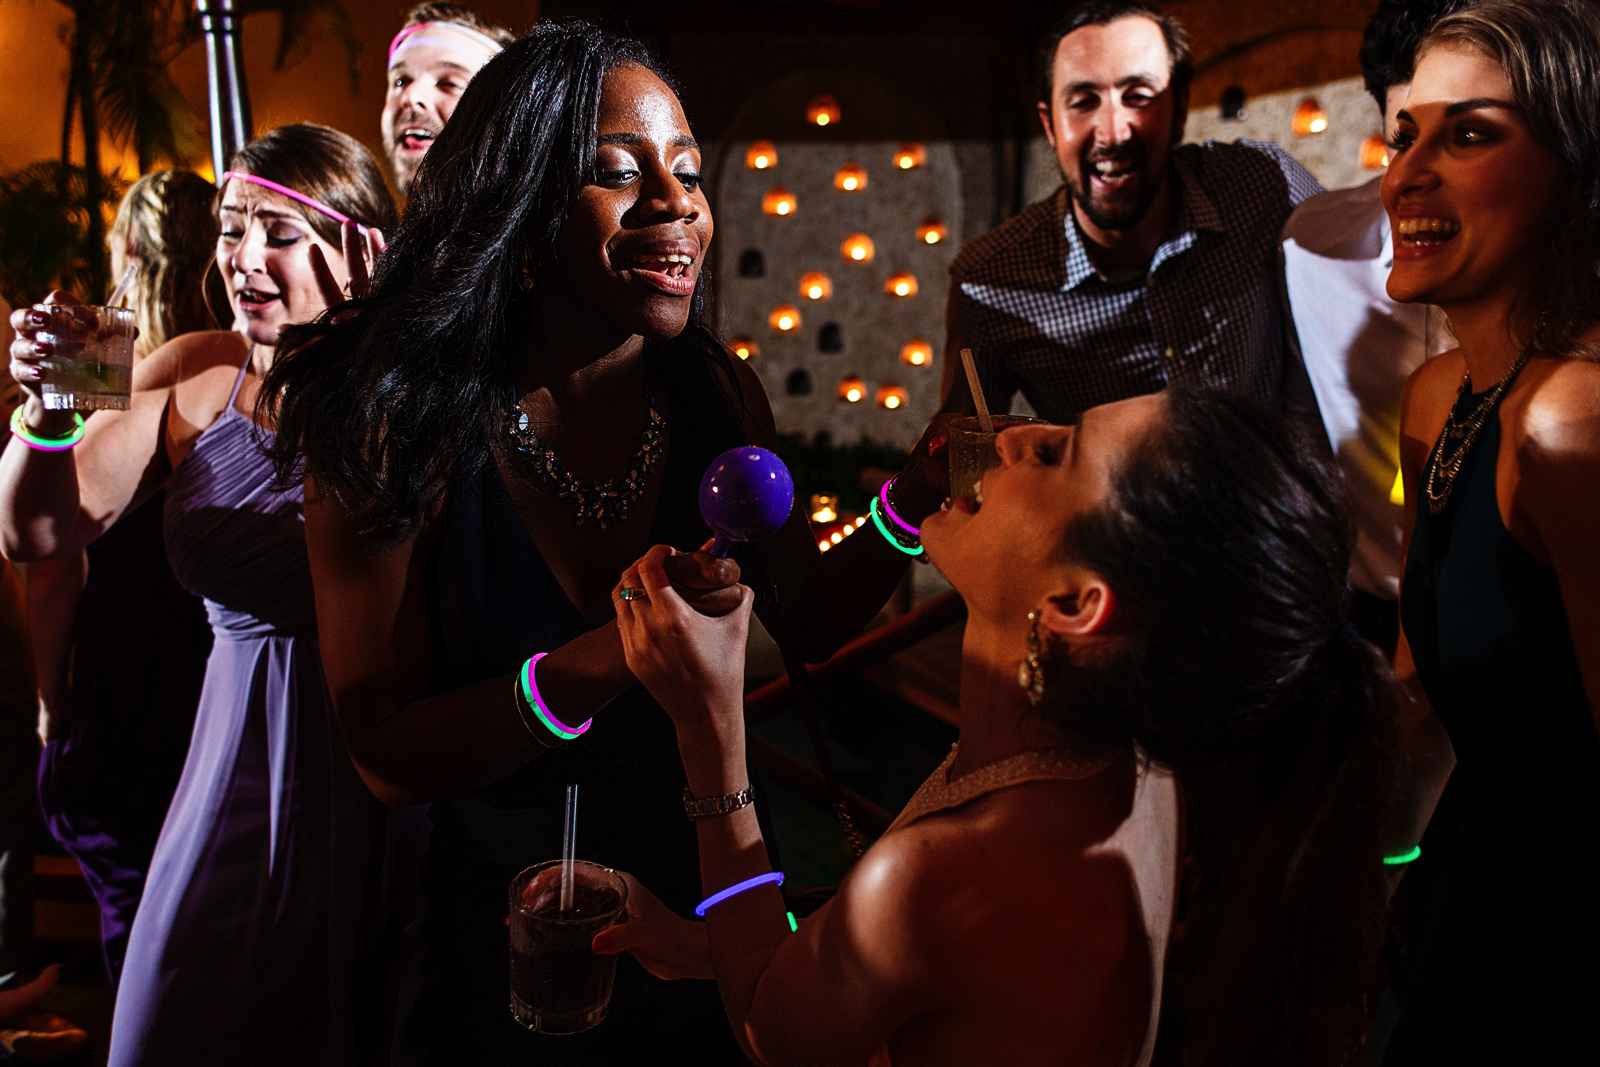 fun-party-wedding-dancefloor-singing.jpg